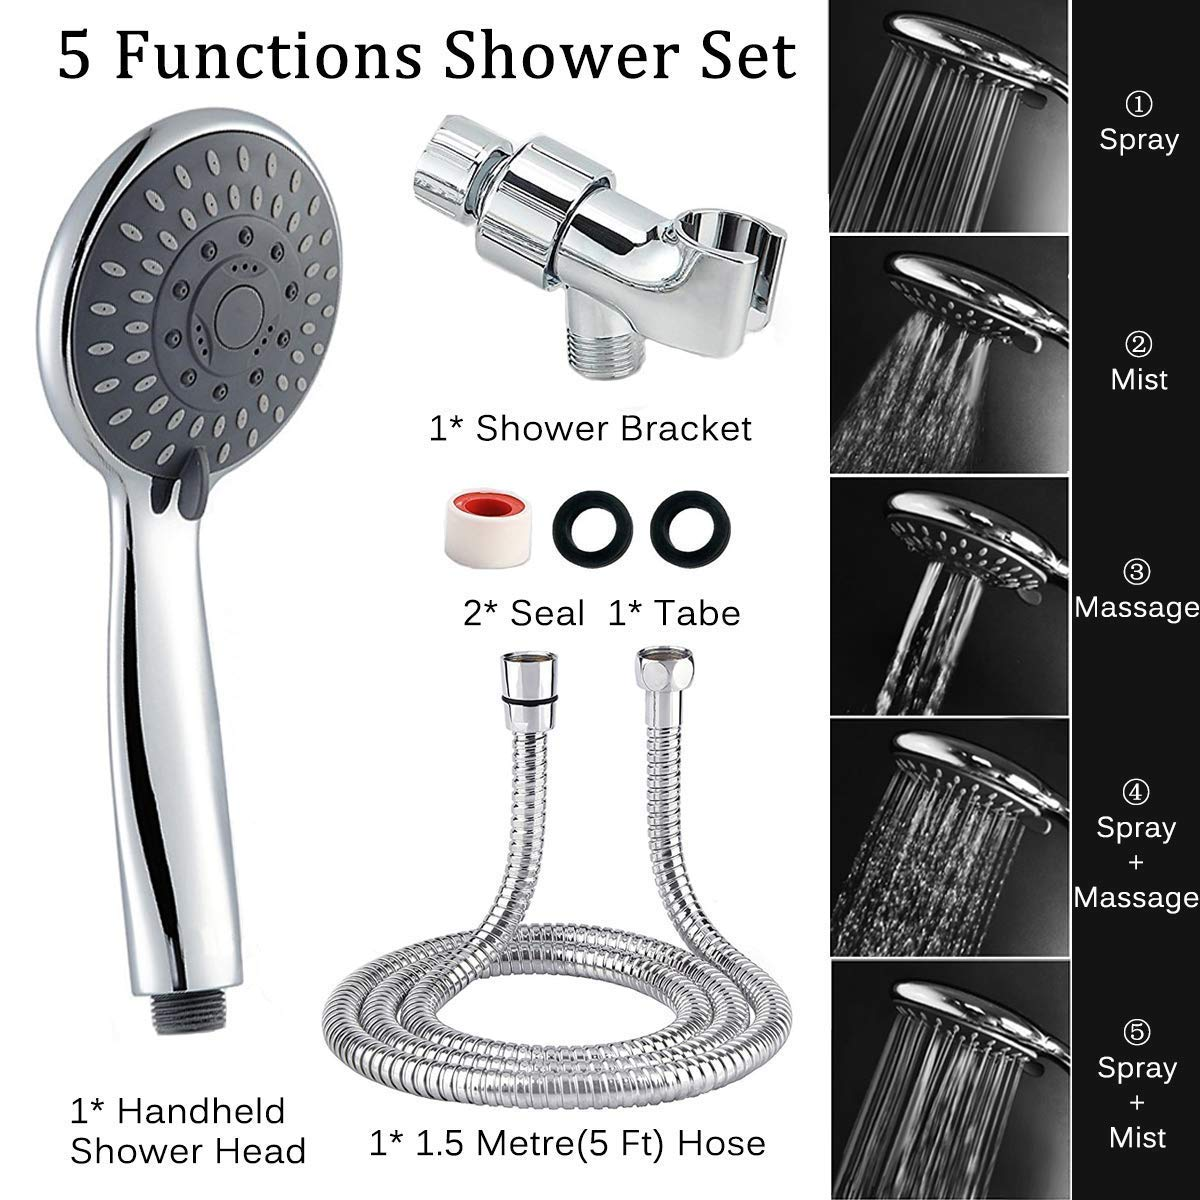 "Shower Head, Arespark 5-Settings 4.1"" Chrome Face High Pressure Handheld Shower Head, Premium Luxury Rainfall Spa Detachable Shower Set, Bathroom Accessories for The Ultimate Shower Experience product image"